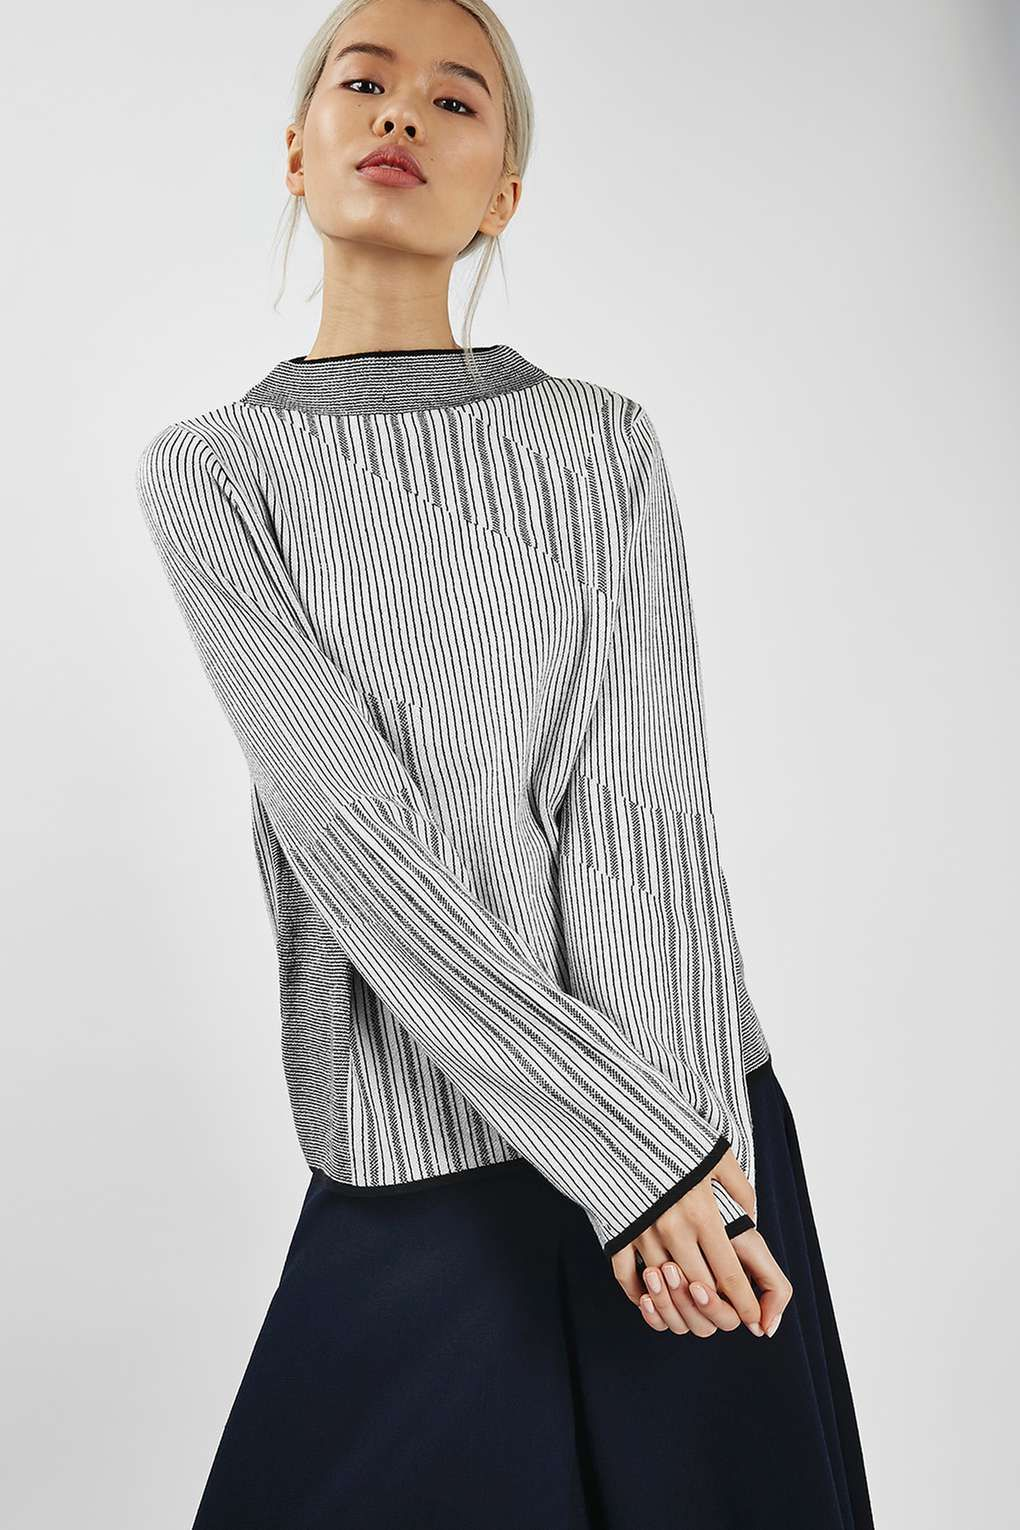 Mixed Stripe Jumper - Sweaters & Knits - Clothing | Moda ropa ...